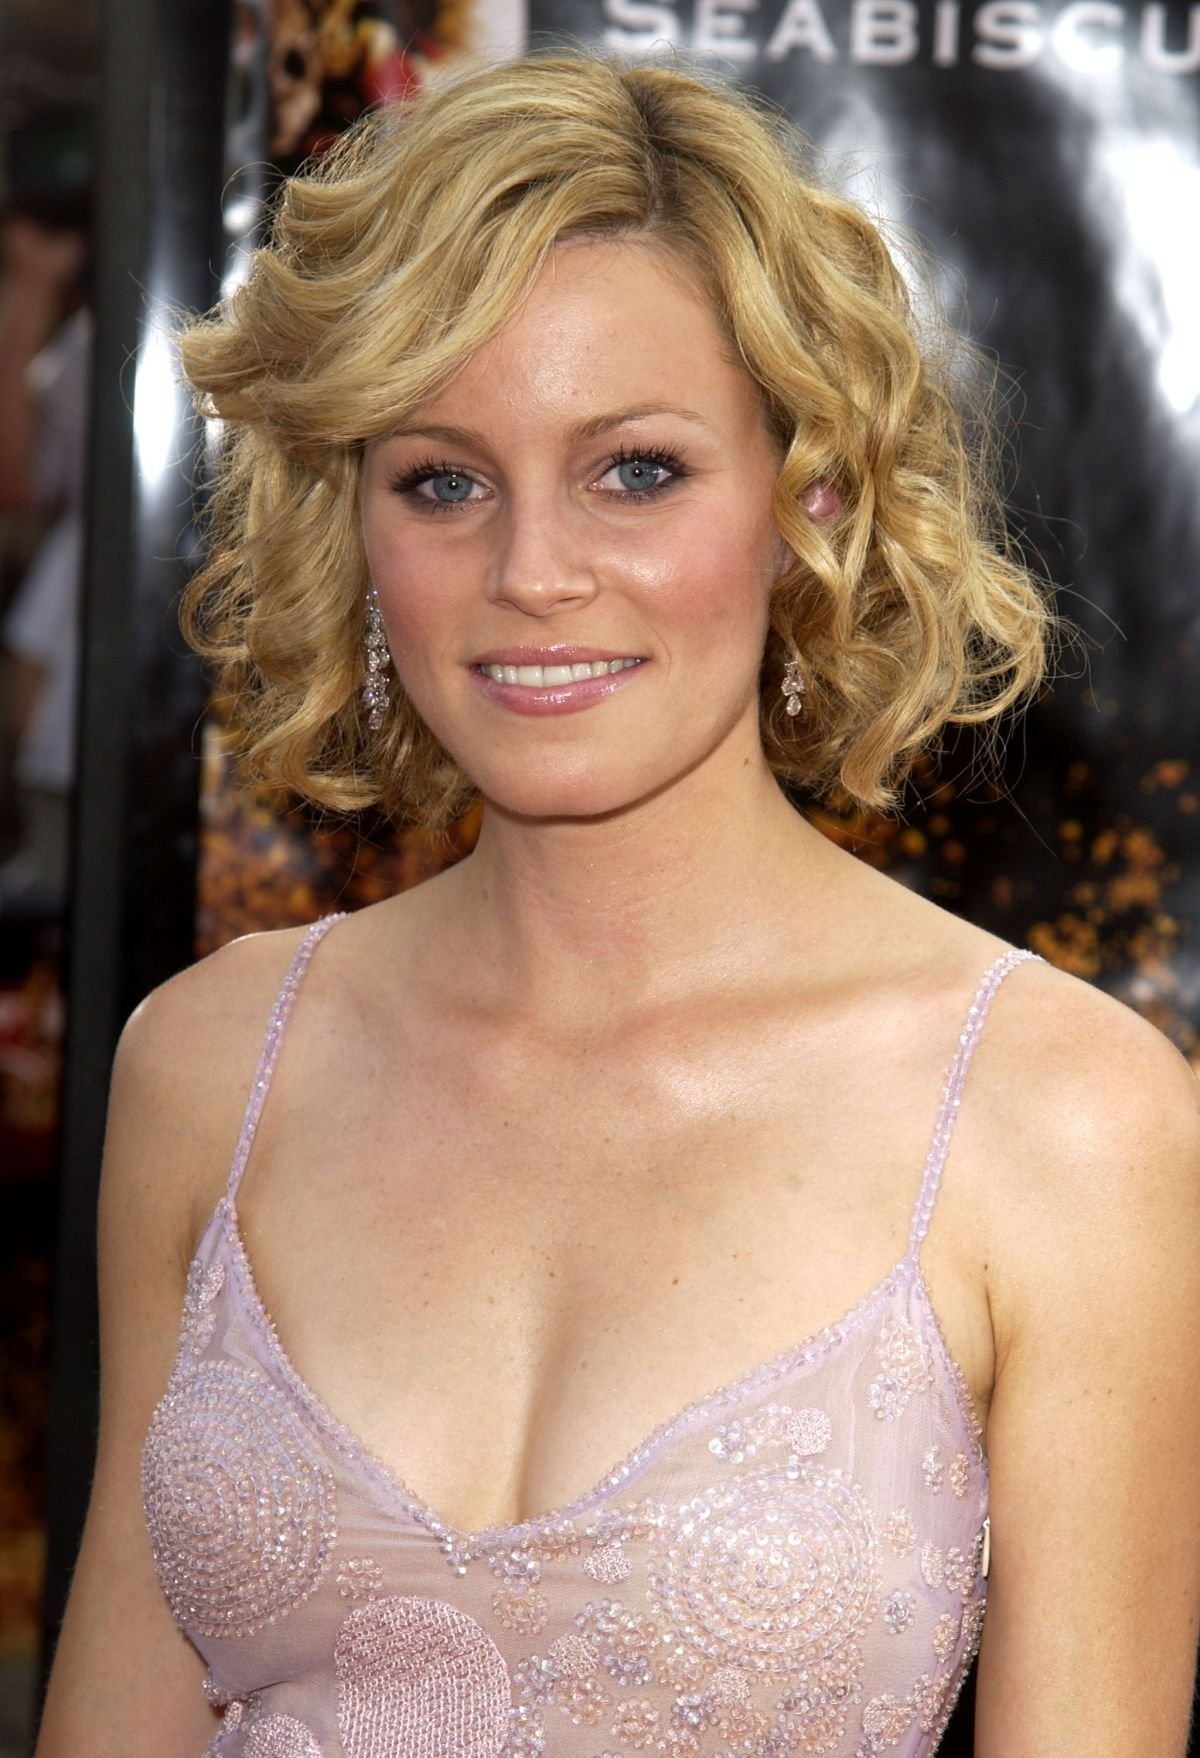 Elizabeth Banks naked (32 photos), Topless, Cleavage, Instagram, butt 2015